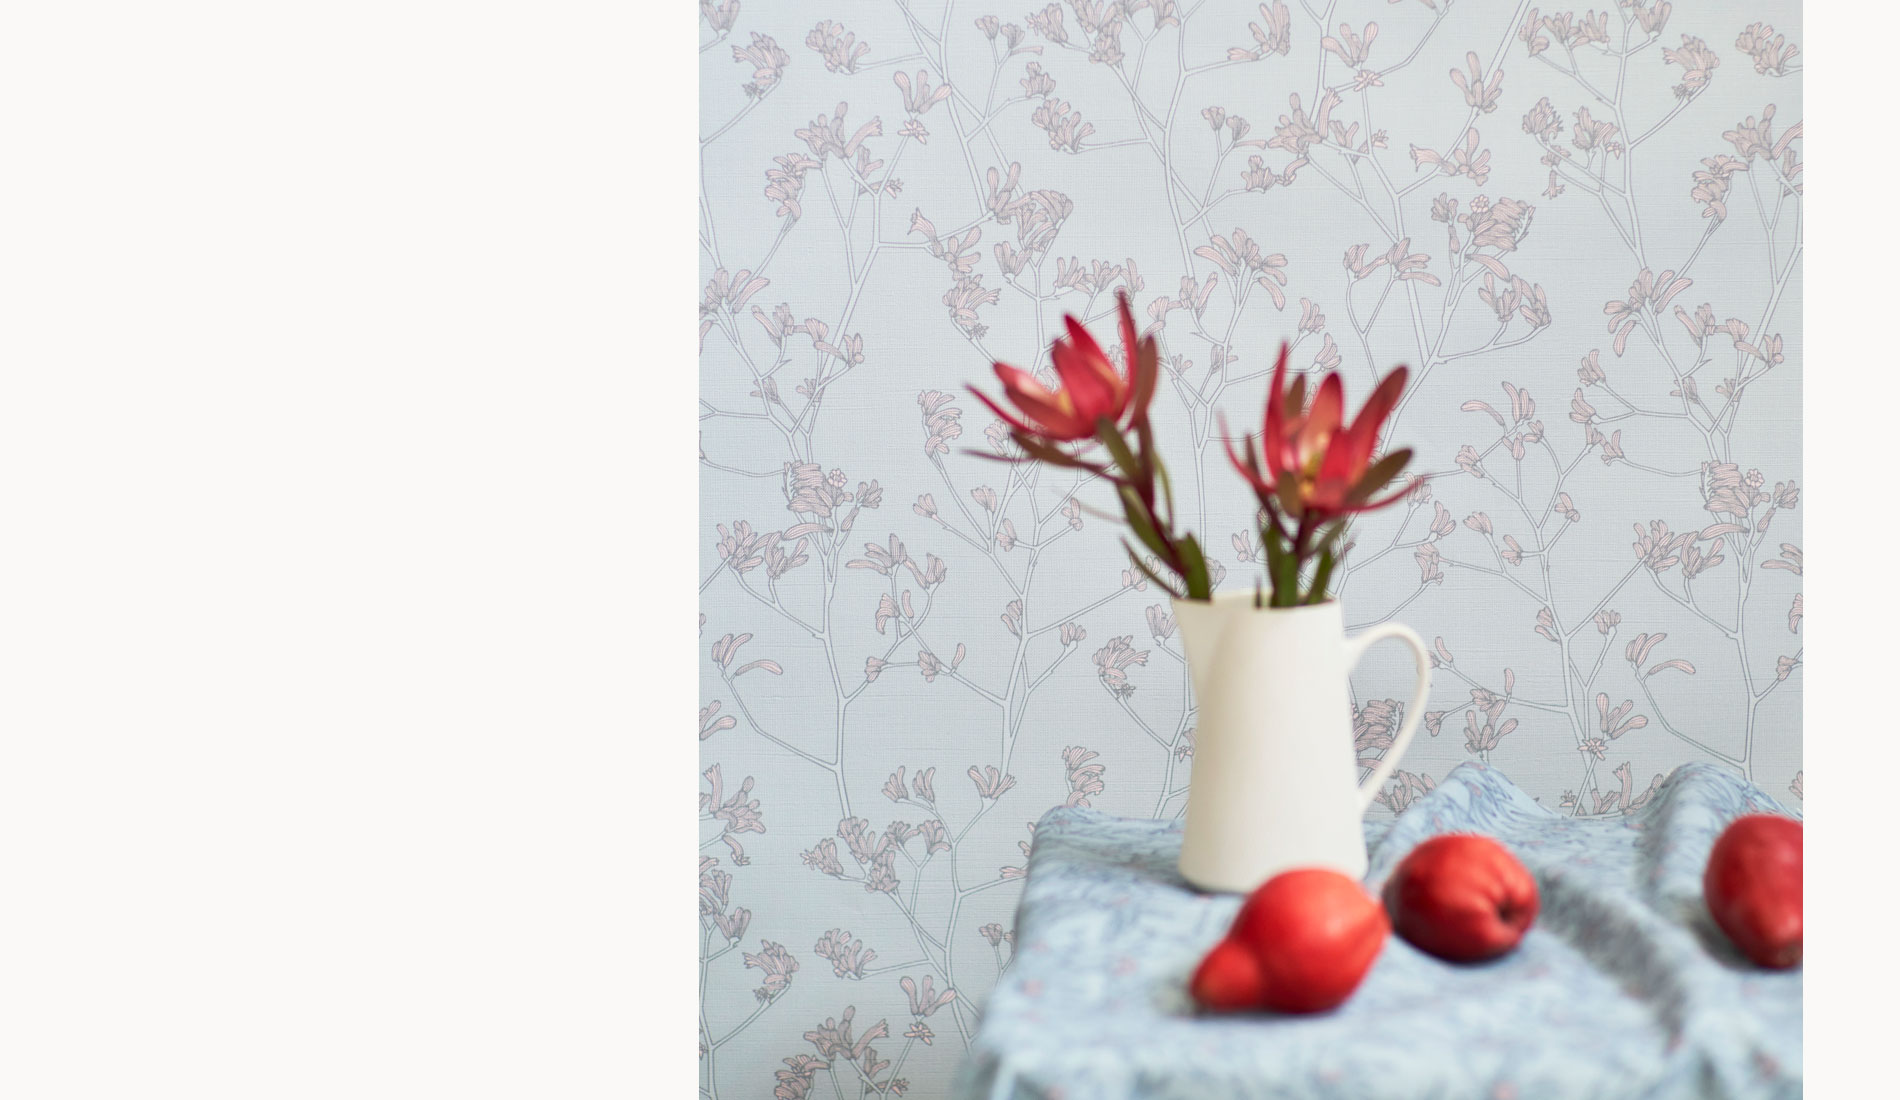 Kangaroo Paw Wallpaper from the Australian Lines Collection by Patricia Braune